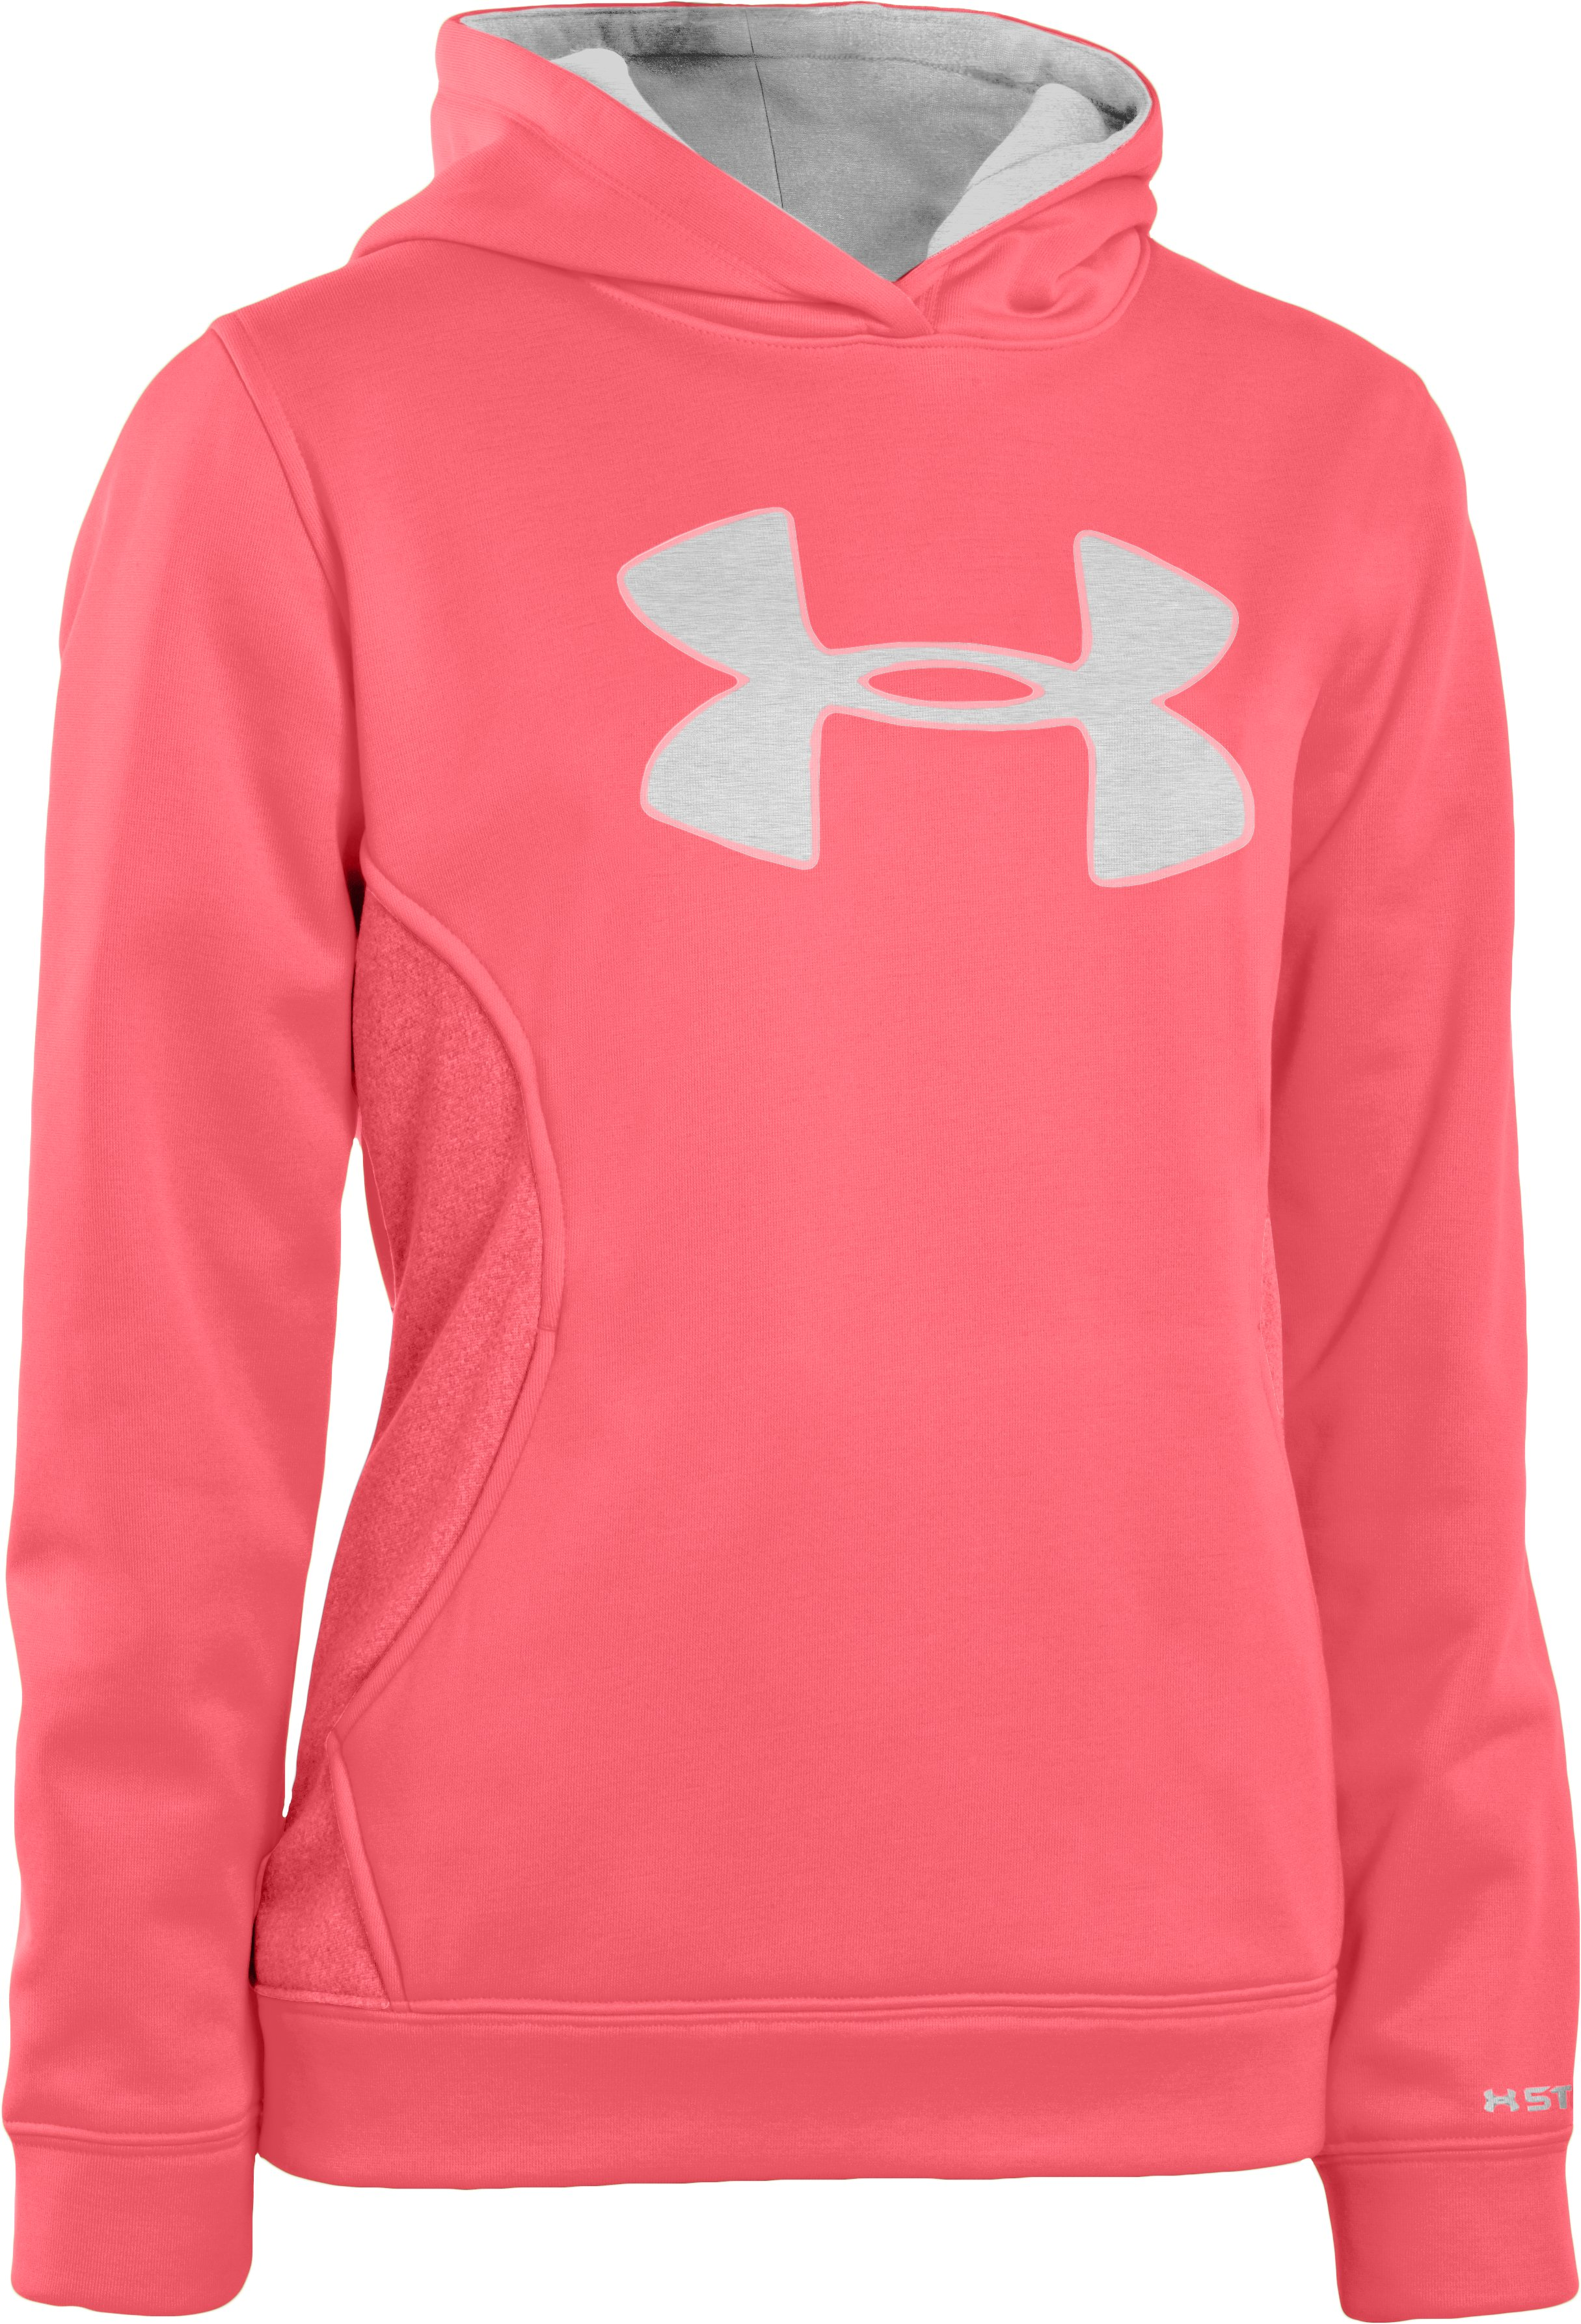 Girls' Armour® Fleece Storm Big Logo Hoodie, BRILLIANCE, zoomed image